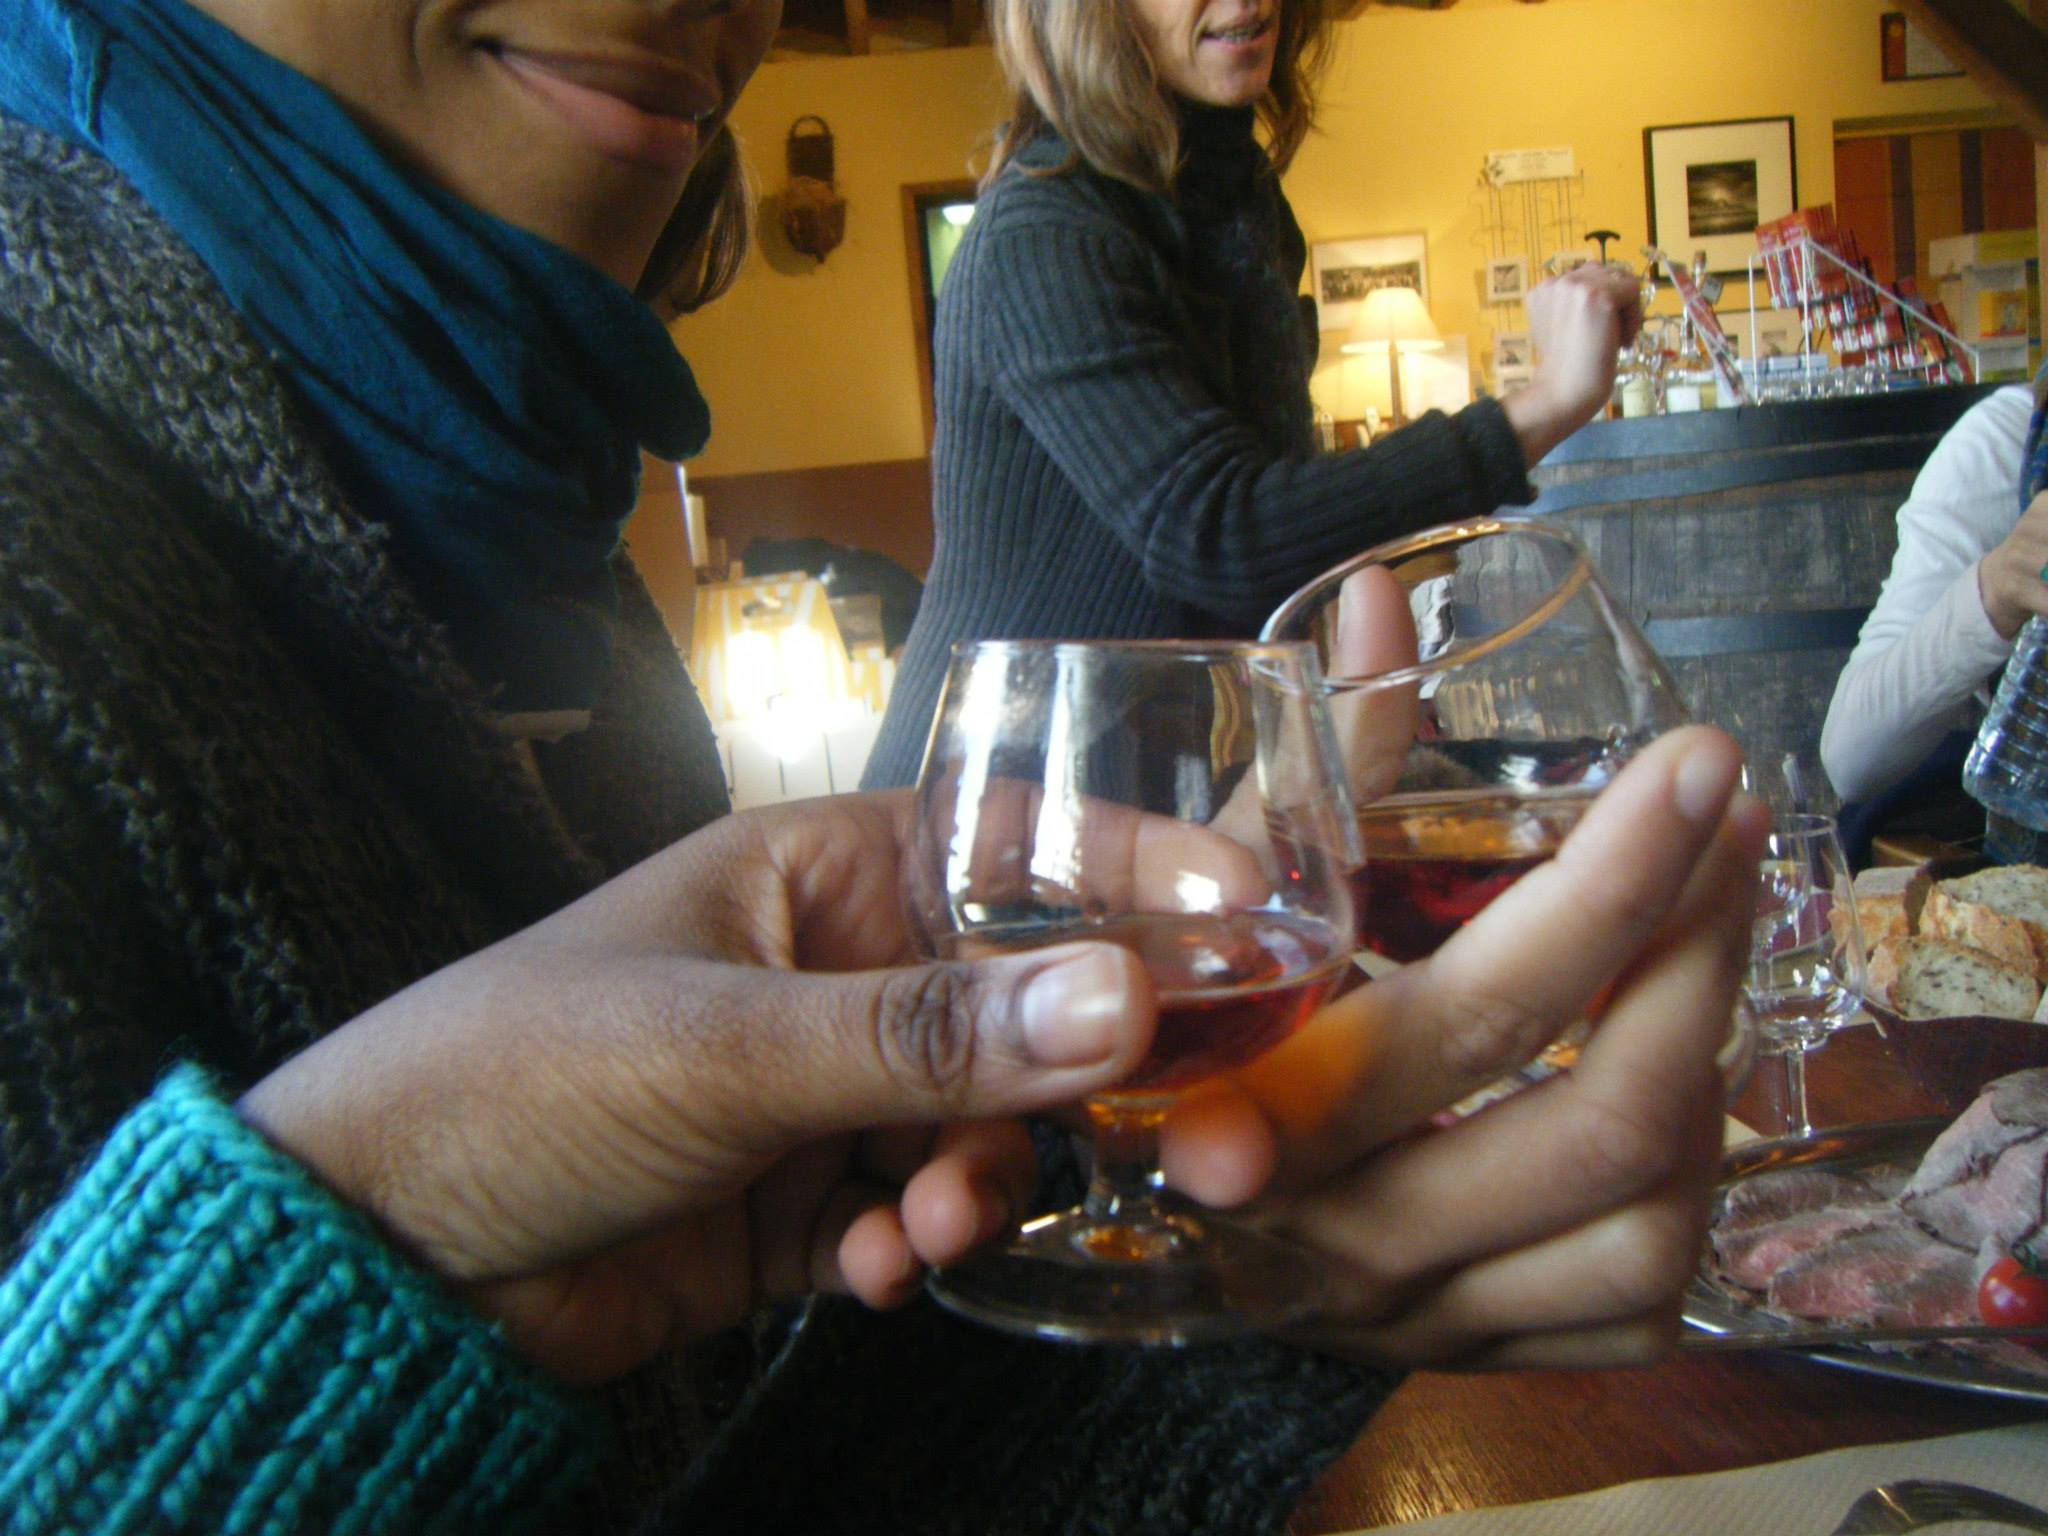 Women toasting with cognac glasses in the countryside of France